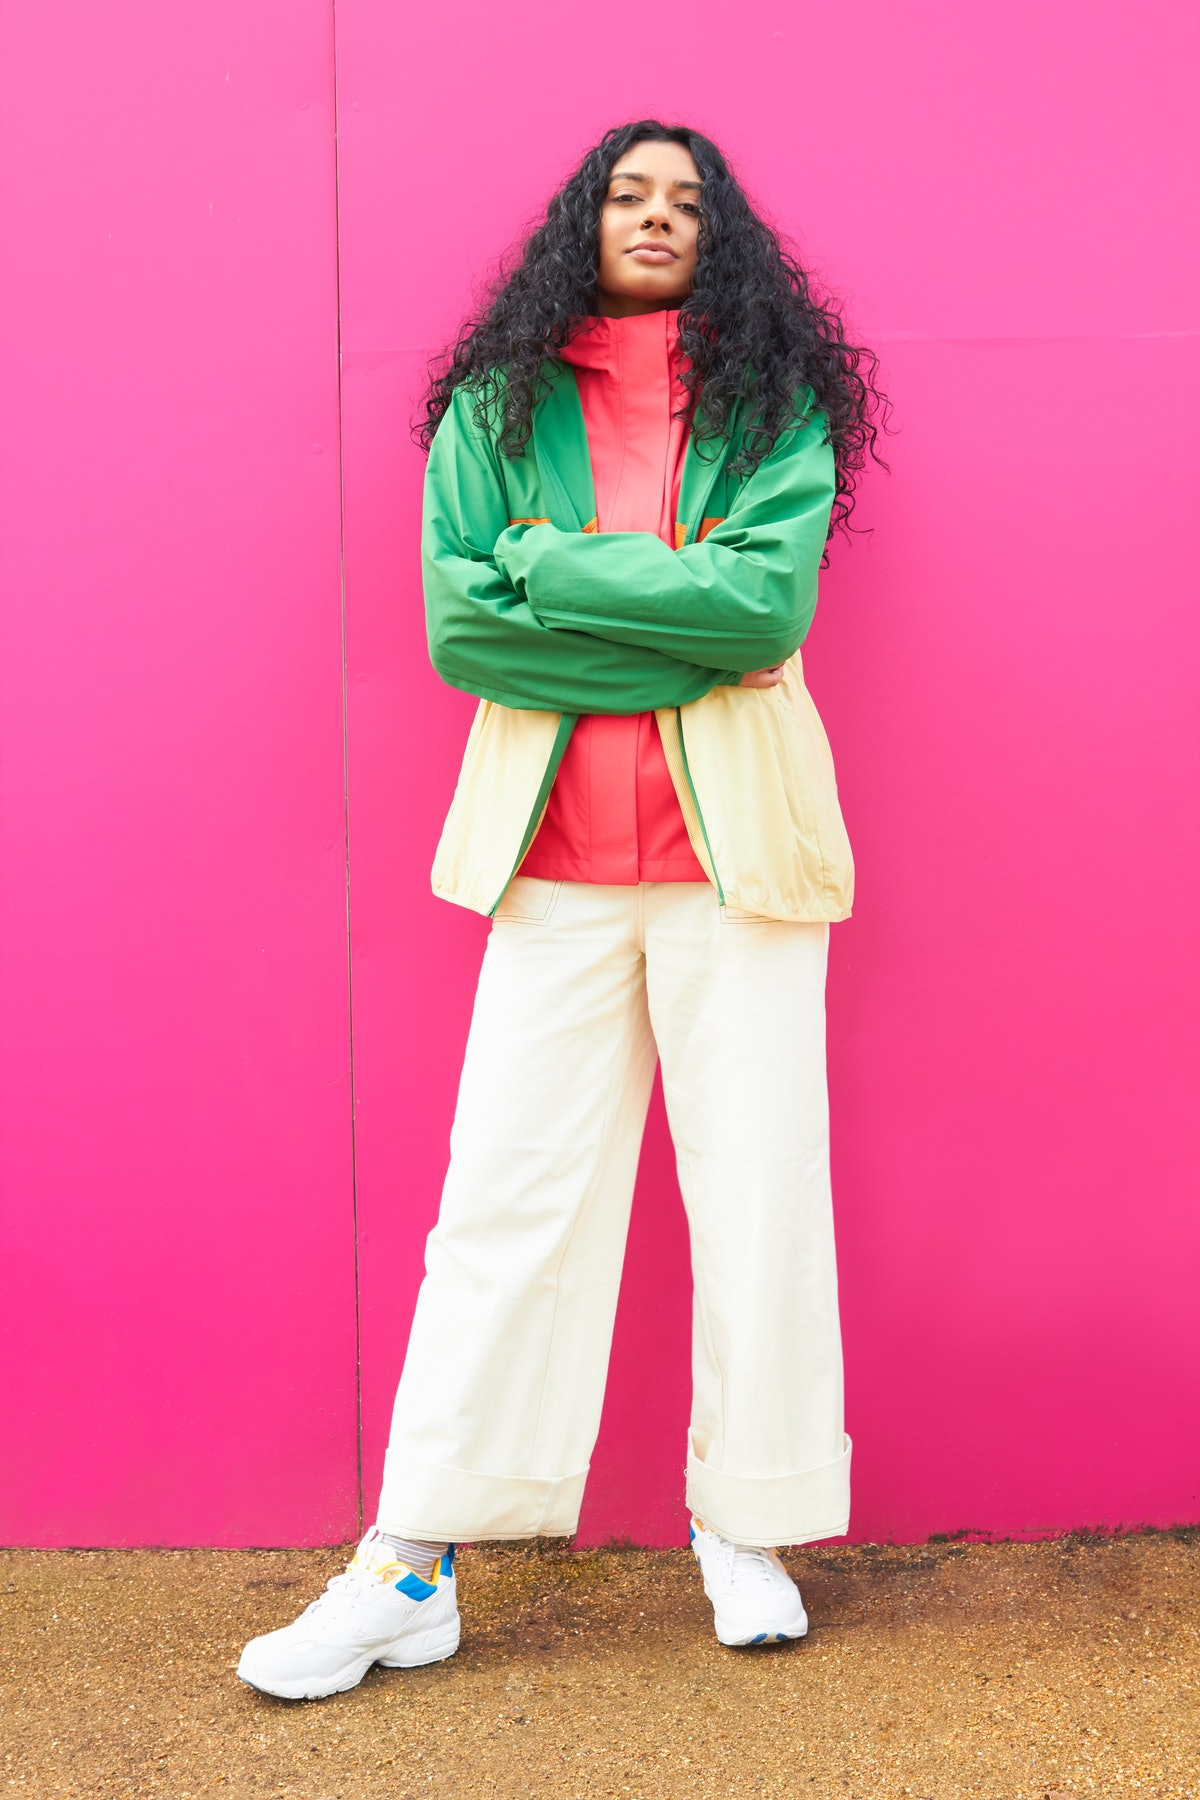 Young Cancer woman looking at the camera with a bright pink background.